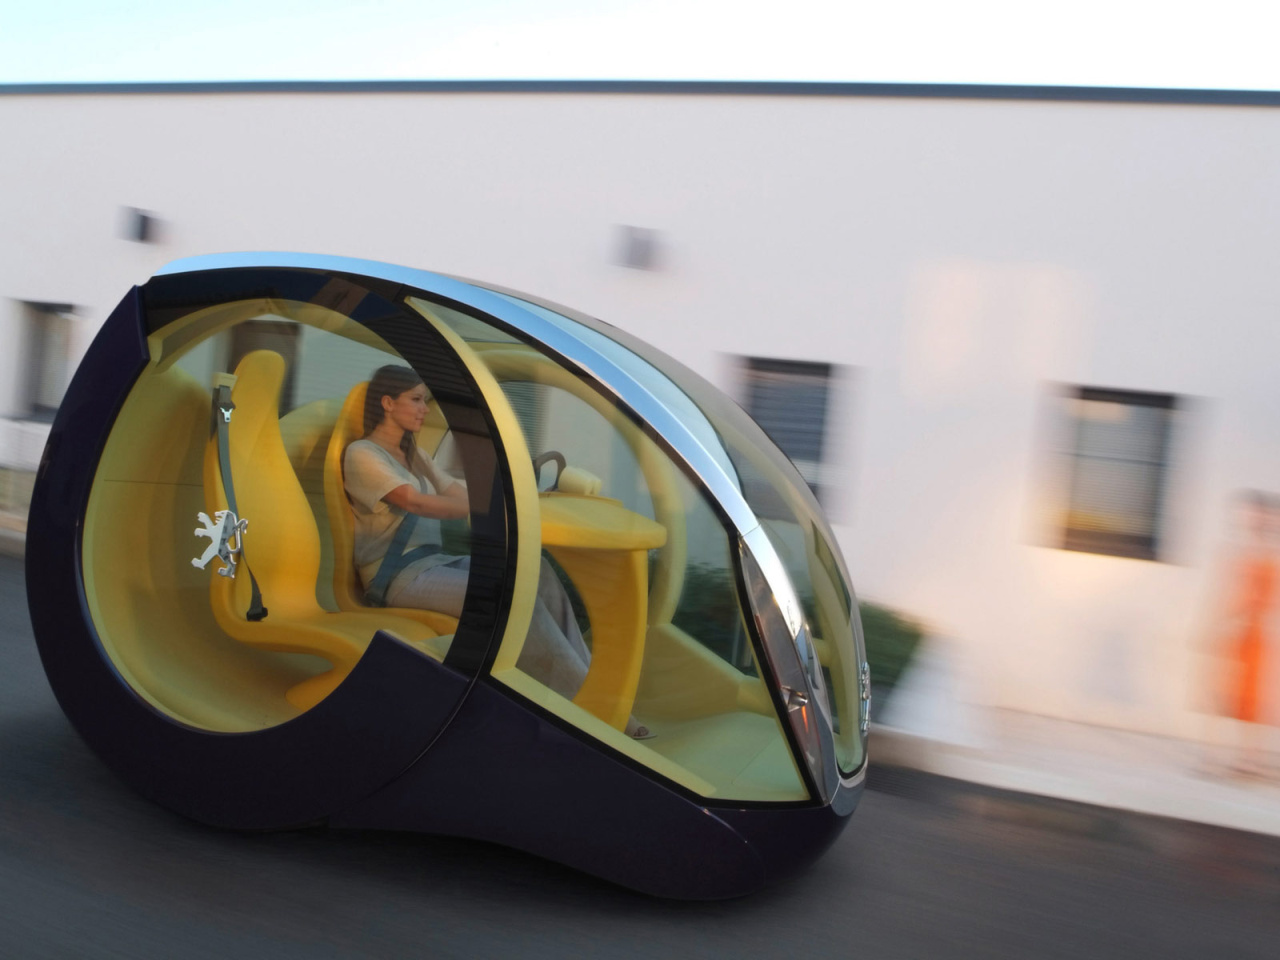 Future Of The Car: The Future Of Car Travel